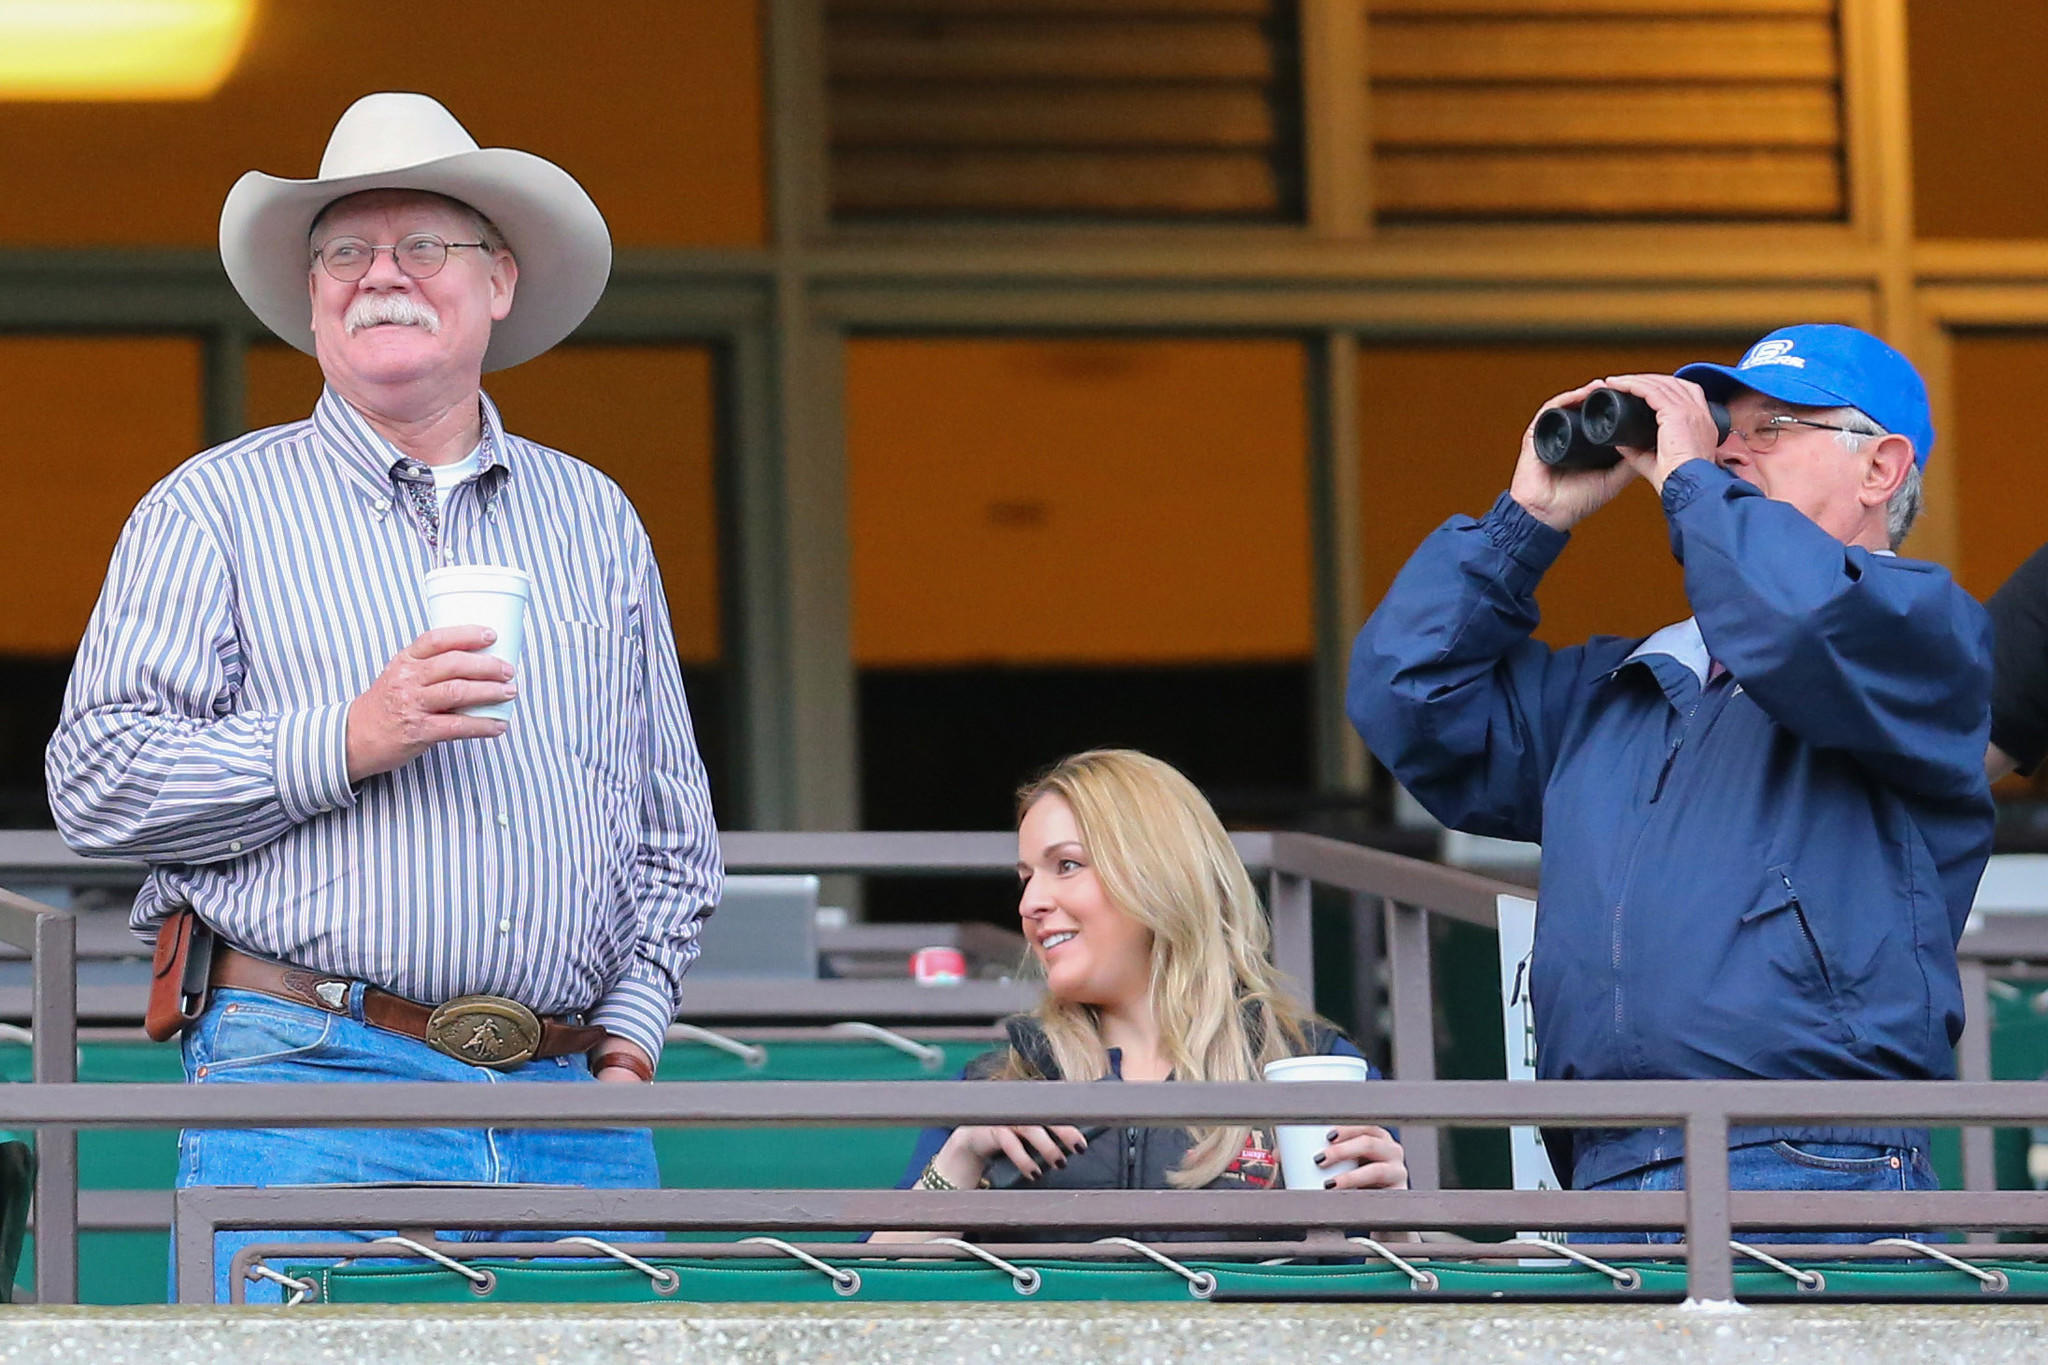 California Chrome co-owner Steve Coburn (left) and trainer Art Sherman (right) are relative newcomers to the Triple Crown scene.